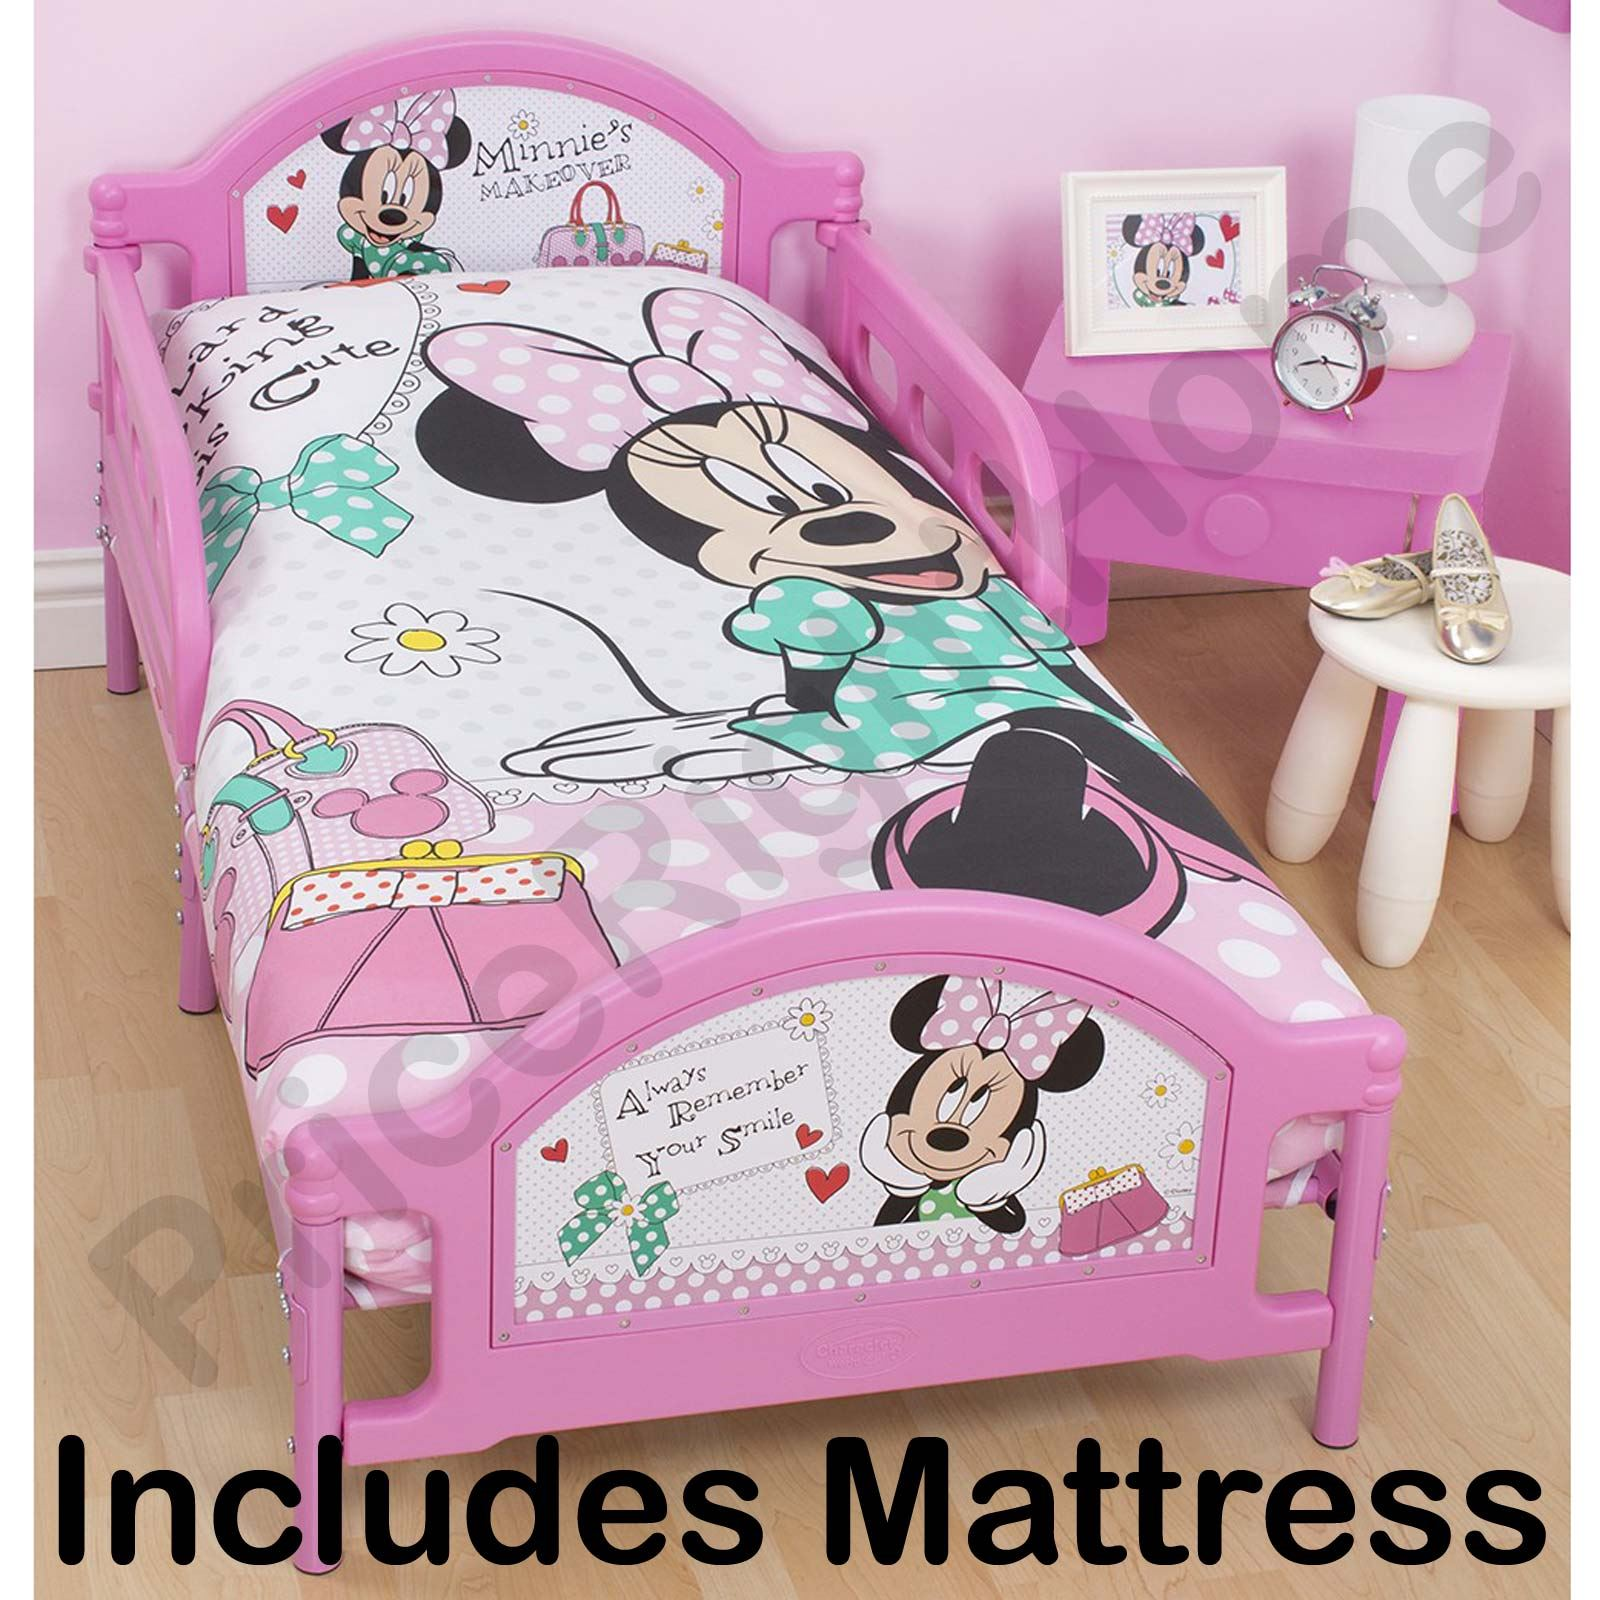 minnie mouse kleinkind bett schaum matratze neu ebay. Black Bedroom Furniture Sets. Home Design Ideas